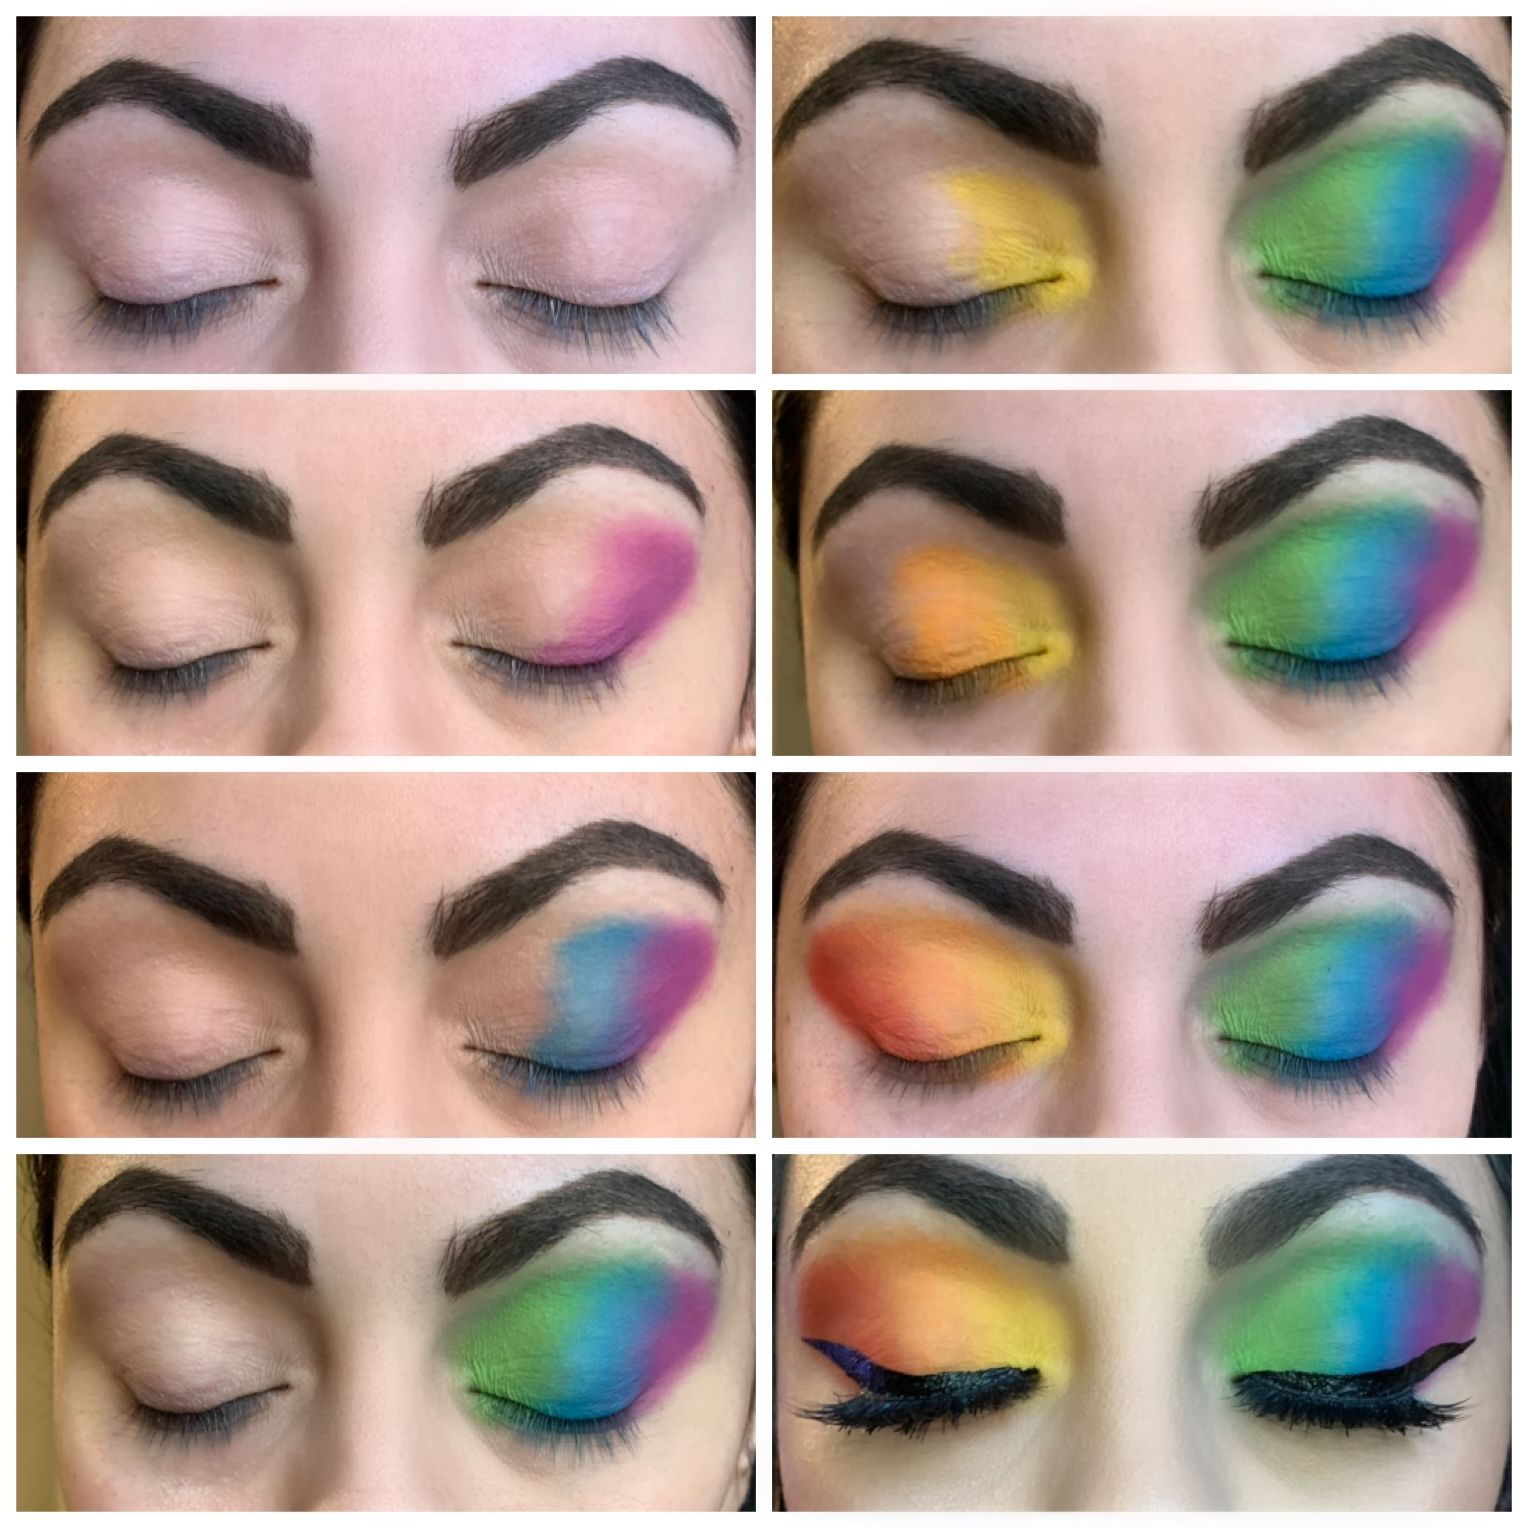 Rainbow Makeup Step By Step Tutorial With Images Rainbow